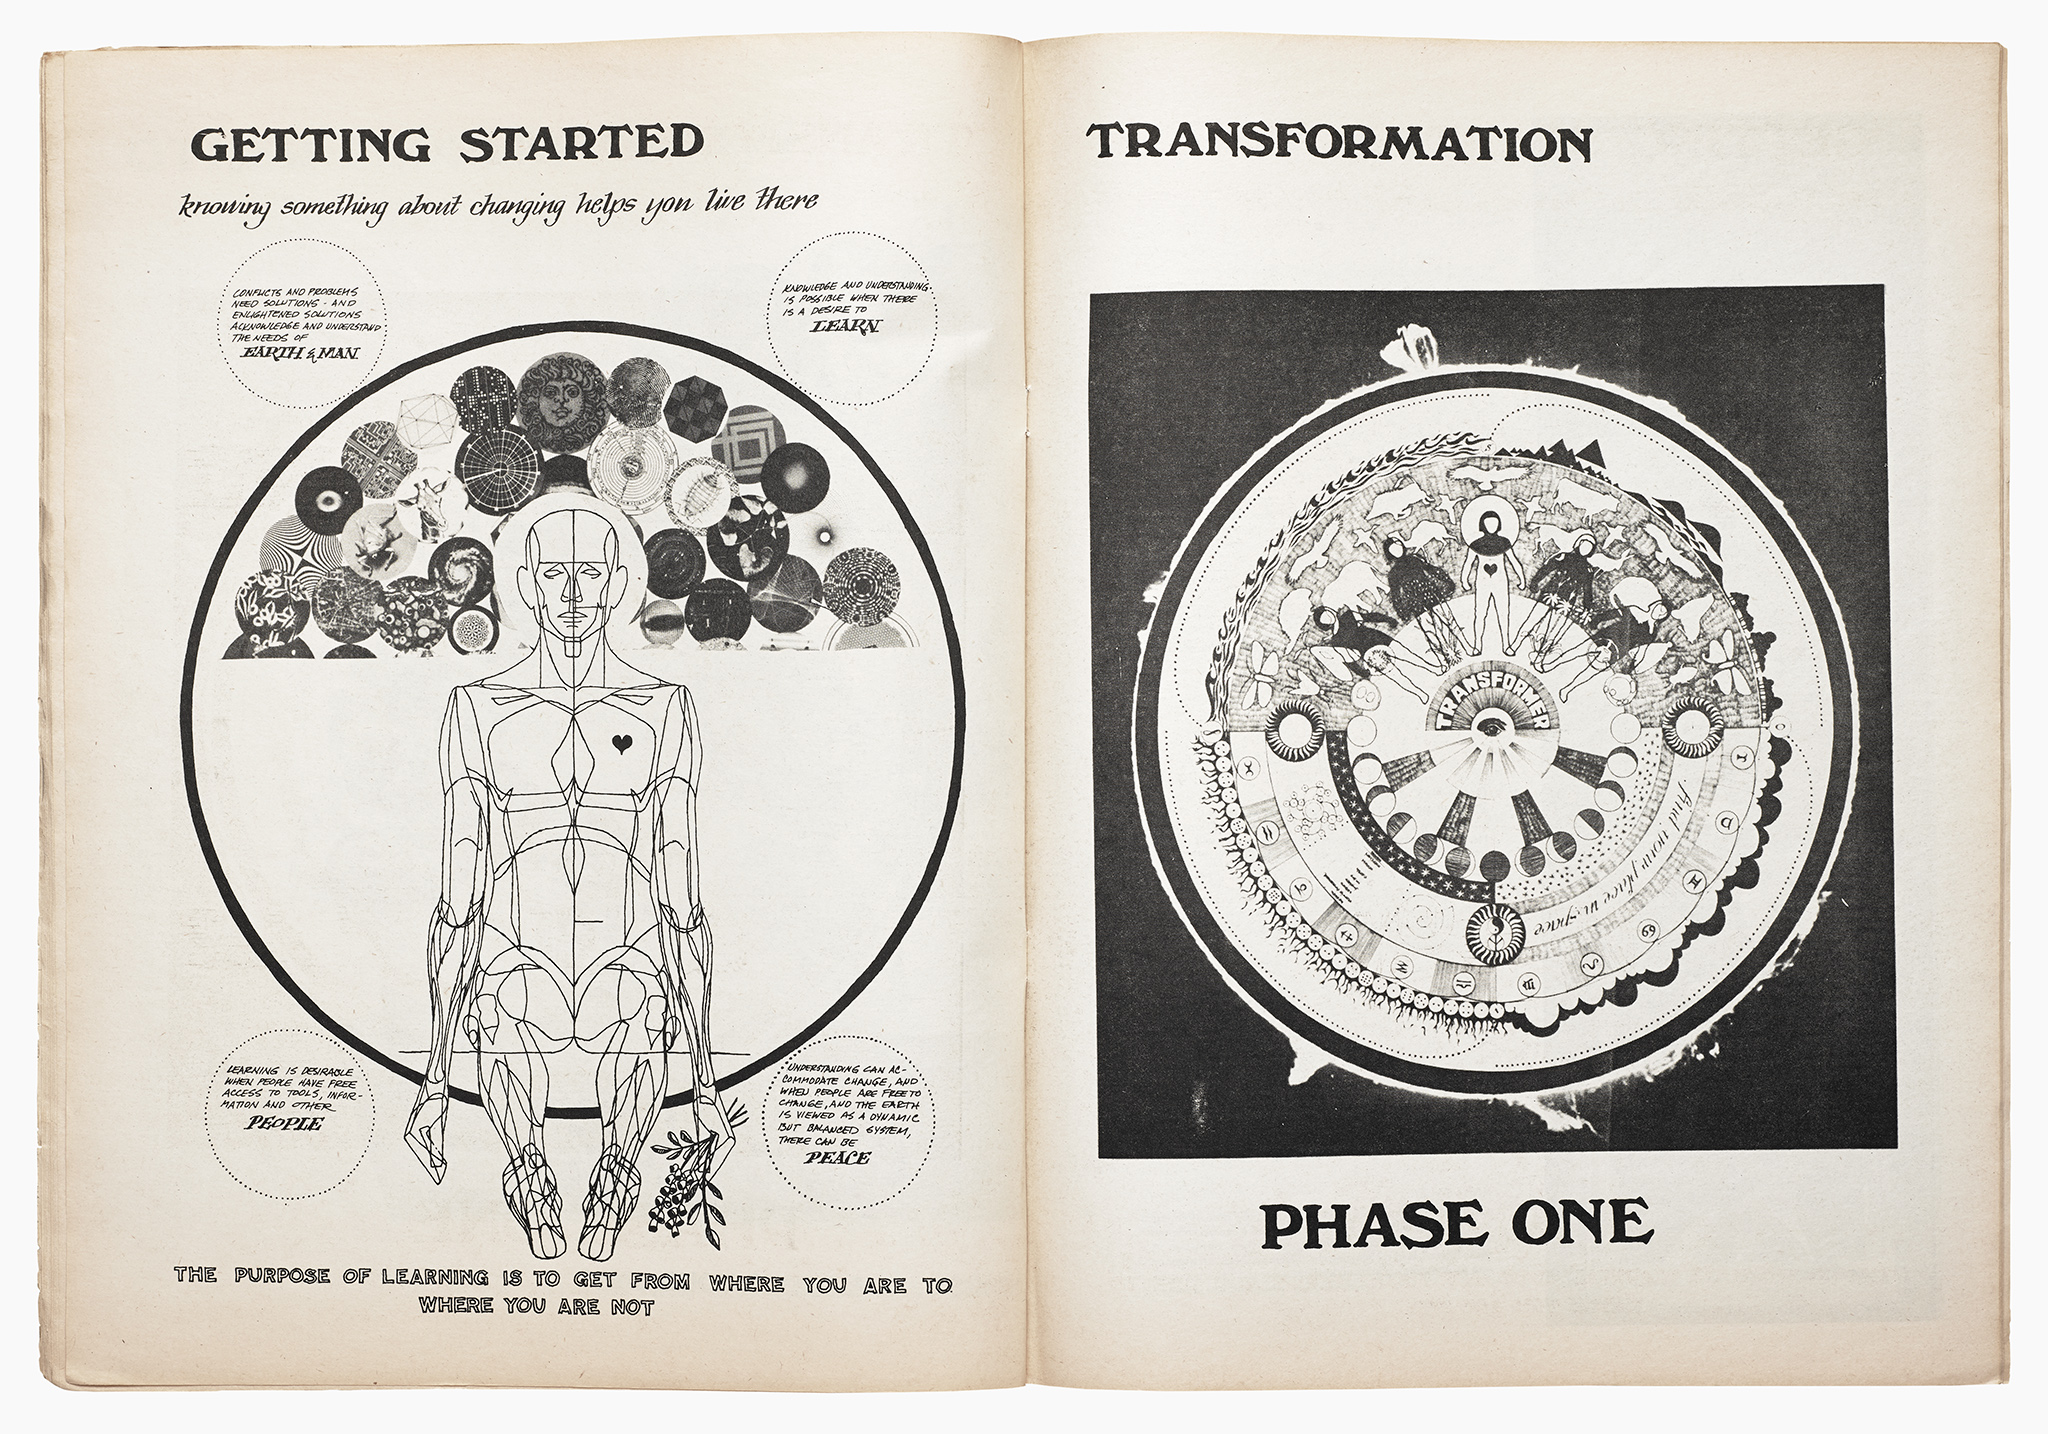 Images from the July 1970 Whole Earth Catalog